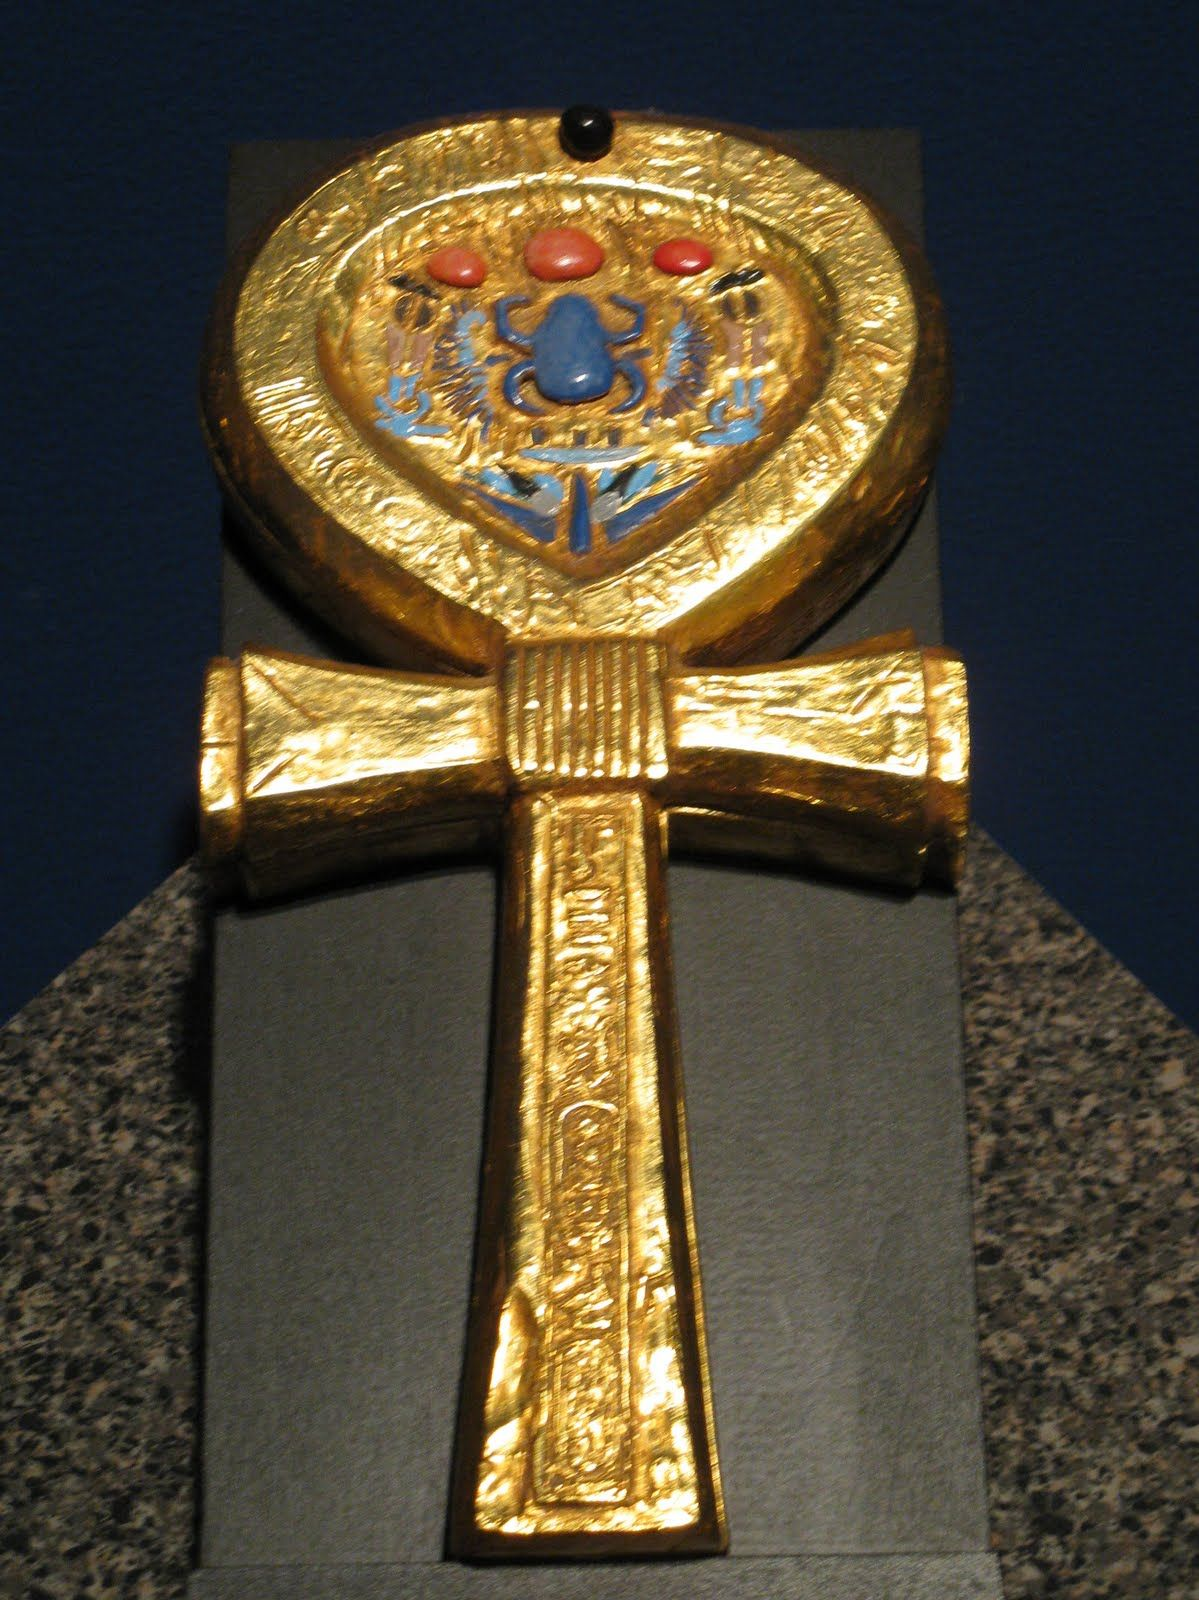 Gilded wooden mirror case in the shape of an ankh emblem of king gilded wooden mirror case in the shape of an ankh emblem of king tutankhamun buycottarizona Images